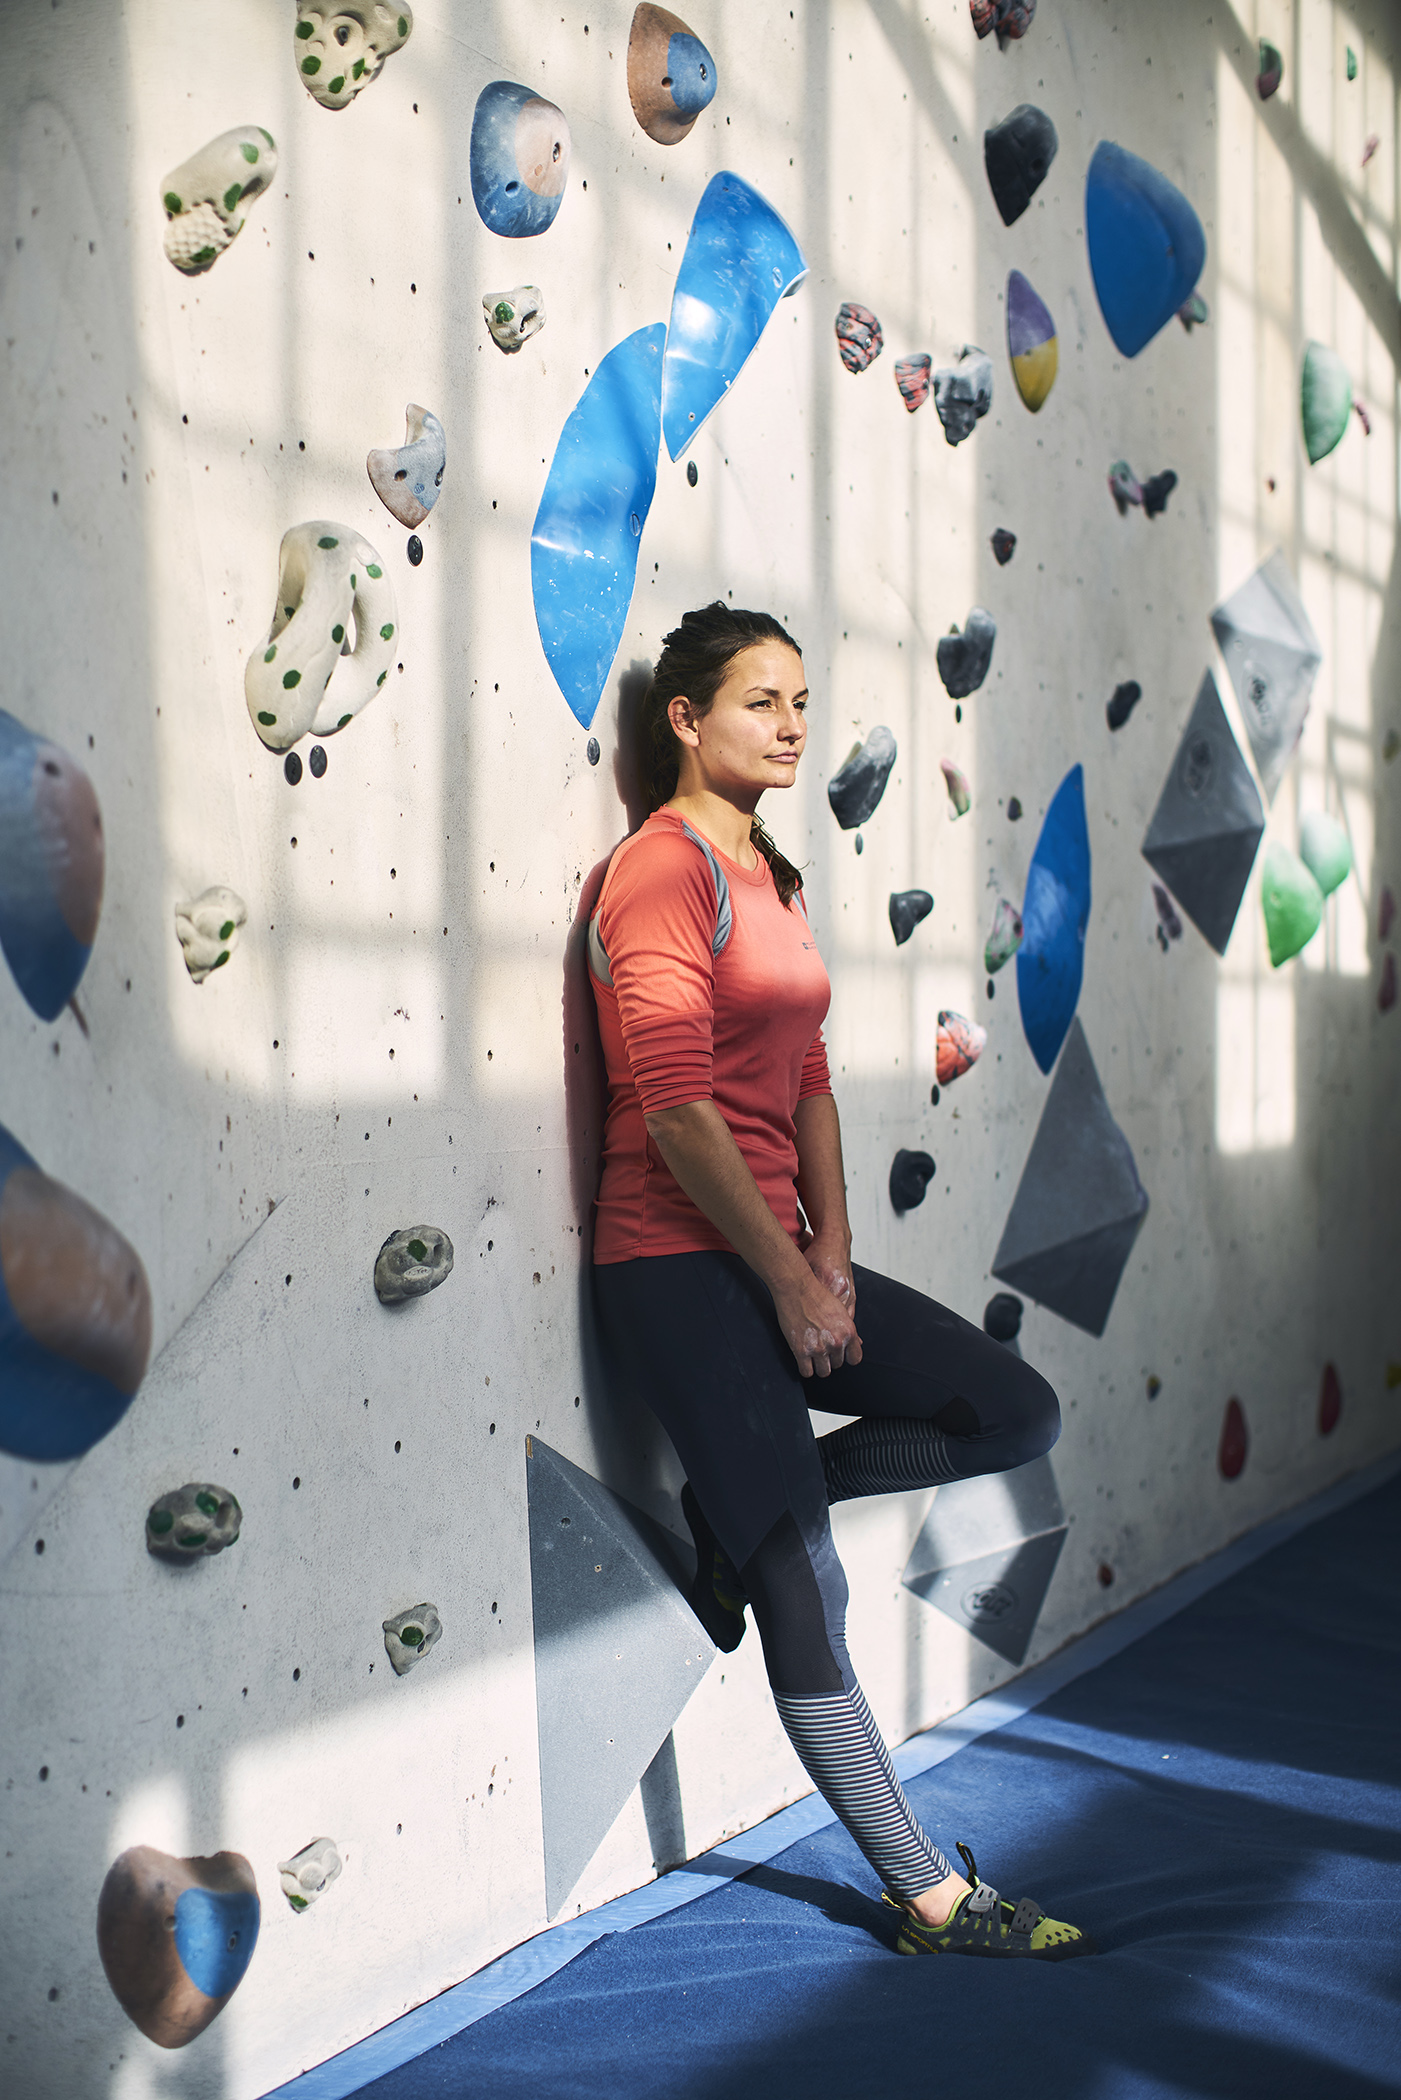 Women In Innovation winner Agnes Czako, founder of AirEx, photographed at the Arch Climbing Wall, London, 12 February 2019. Photo by Bristol photographer Adam Gasson / adamgasson.com